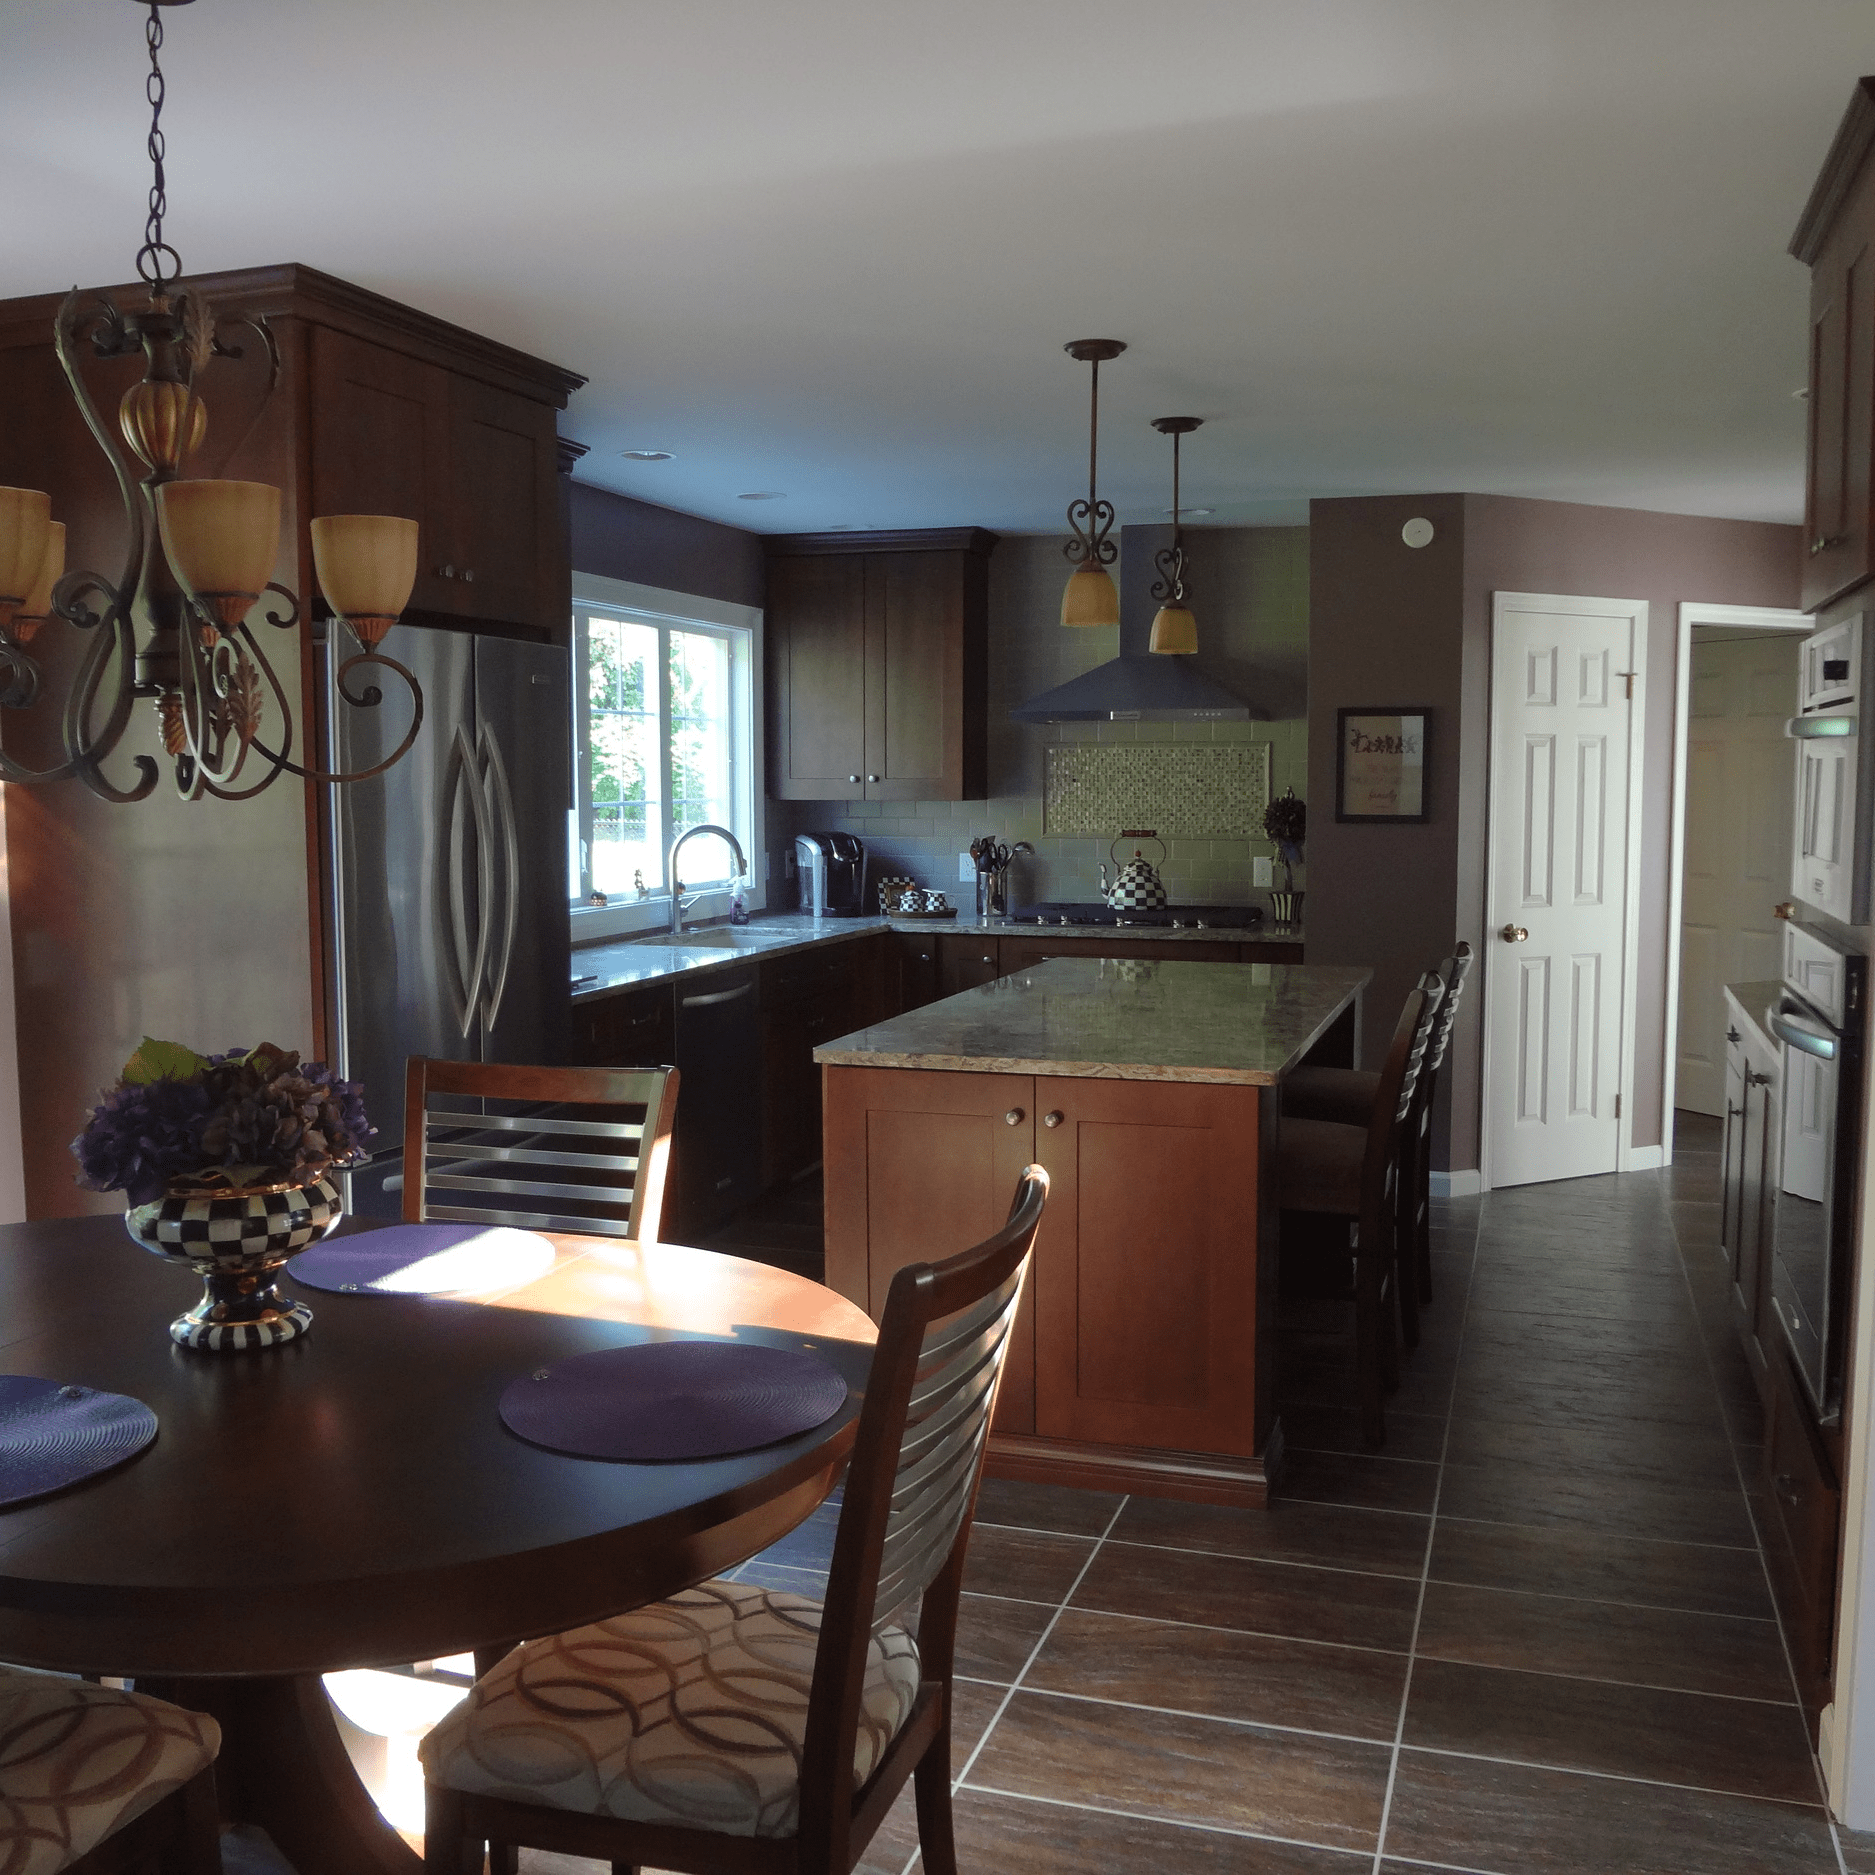 kitchen and bathroom remodeling rochester kitchen remodeling rochester ny Beautiful new kitchen remodel in Greece NY